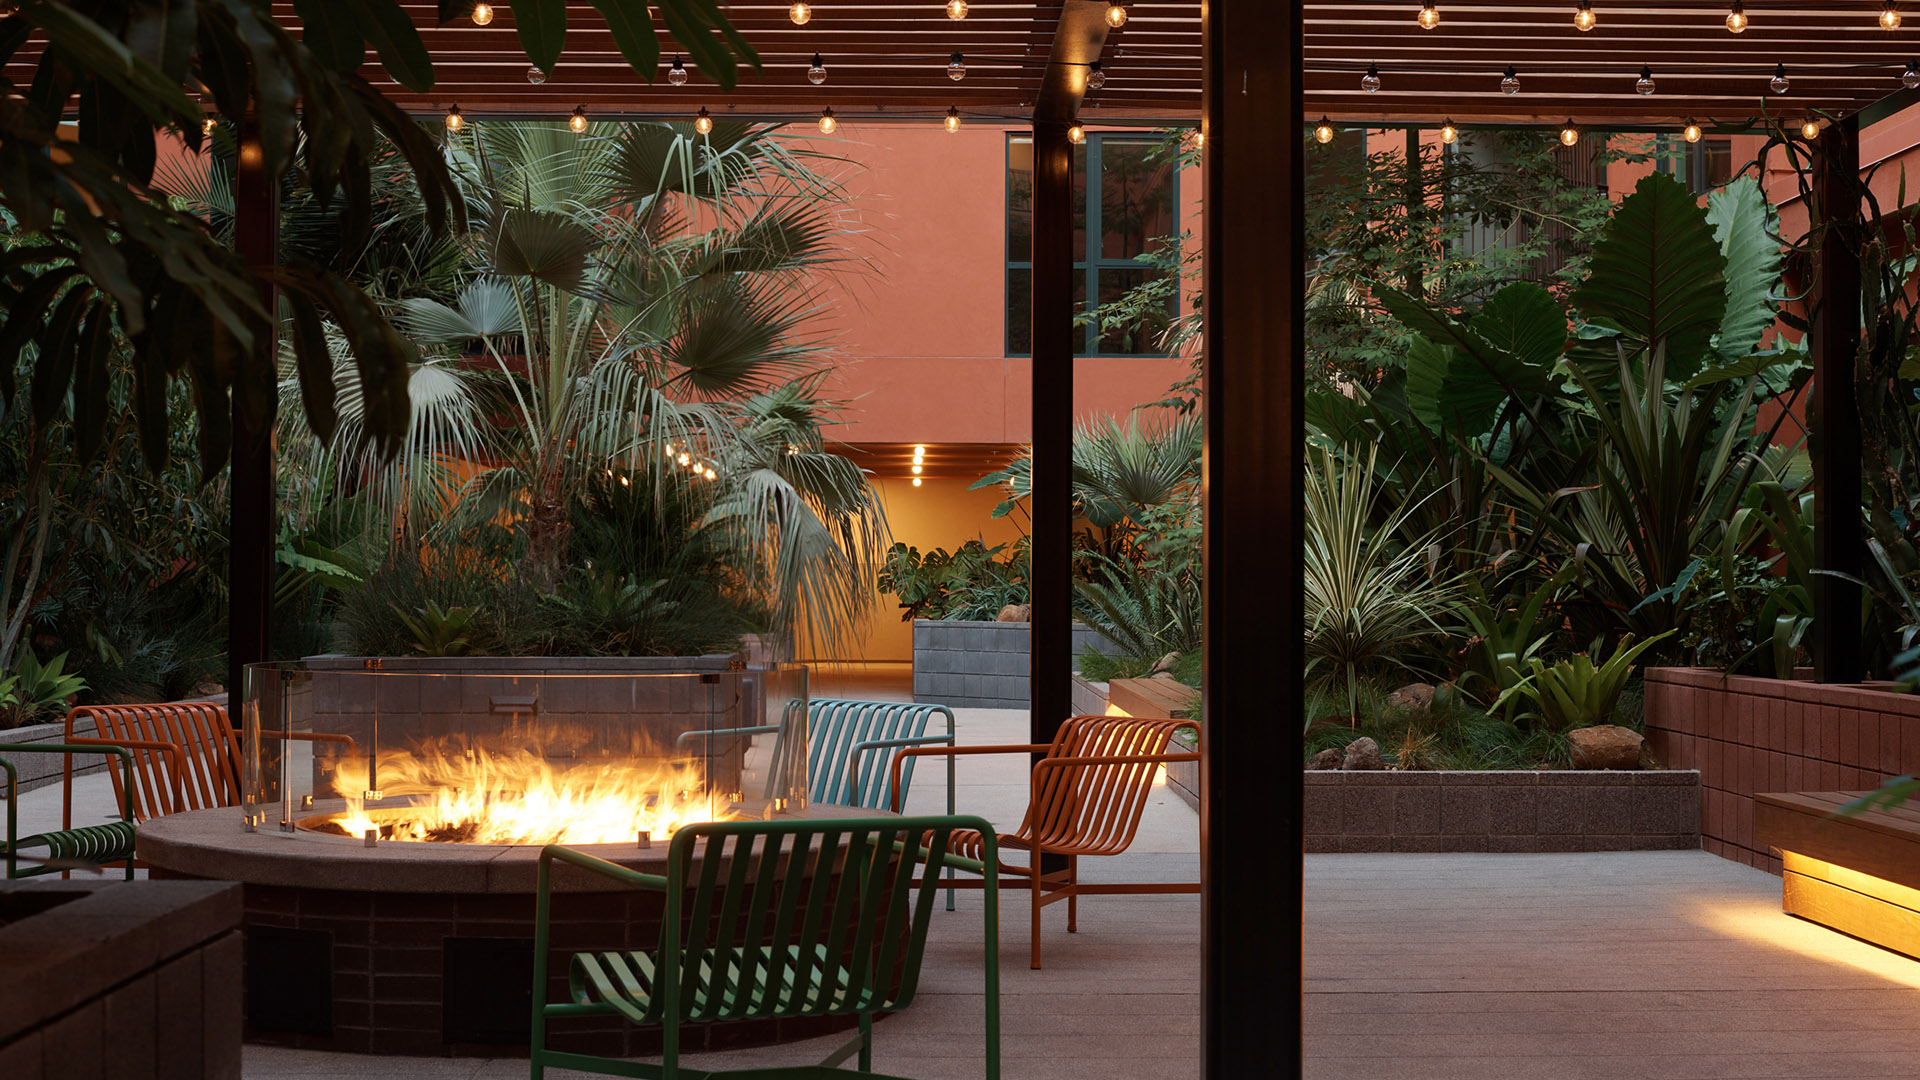 Outdoor lounge area with glowing firepit, colorful metal lounge chairs, and built in planters with tropical plants.